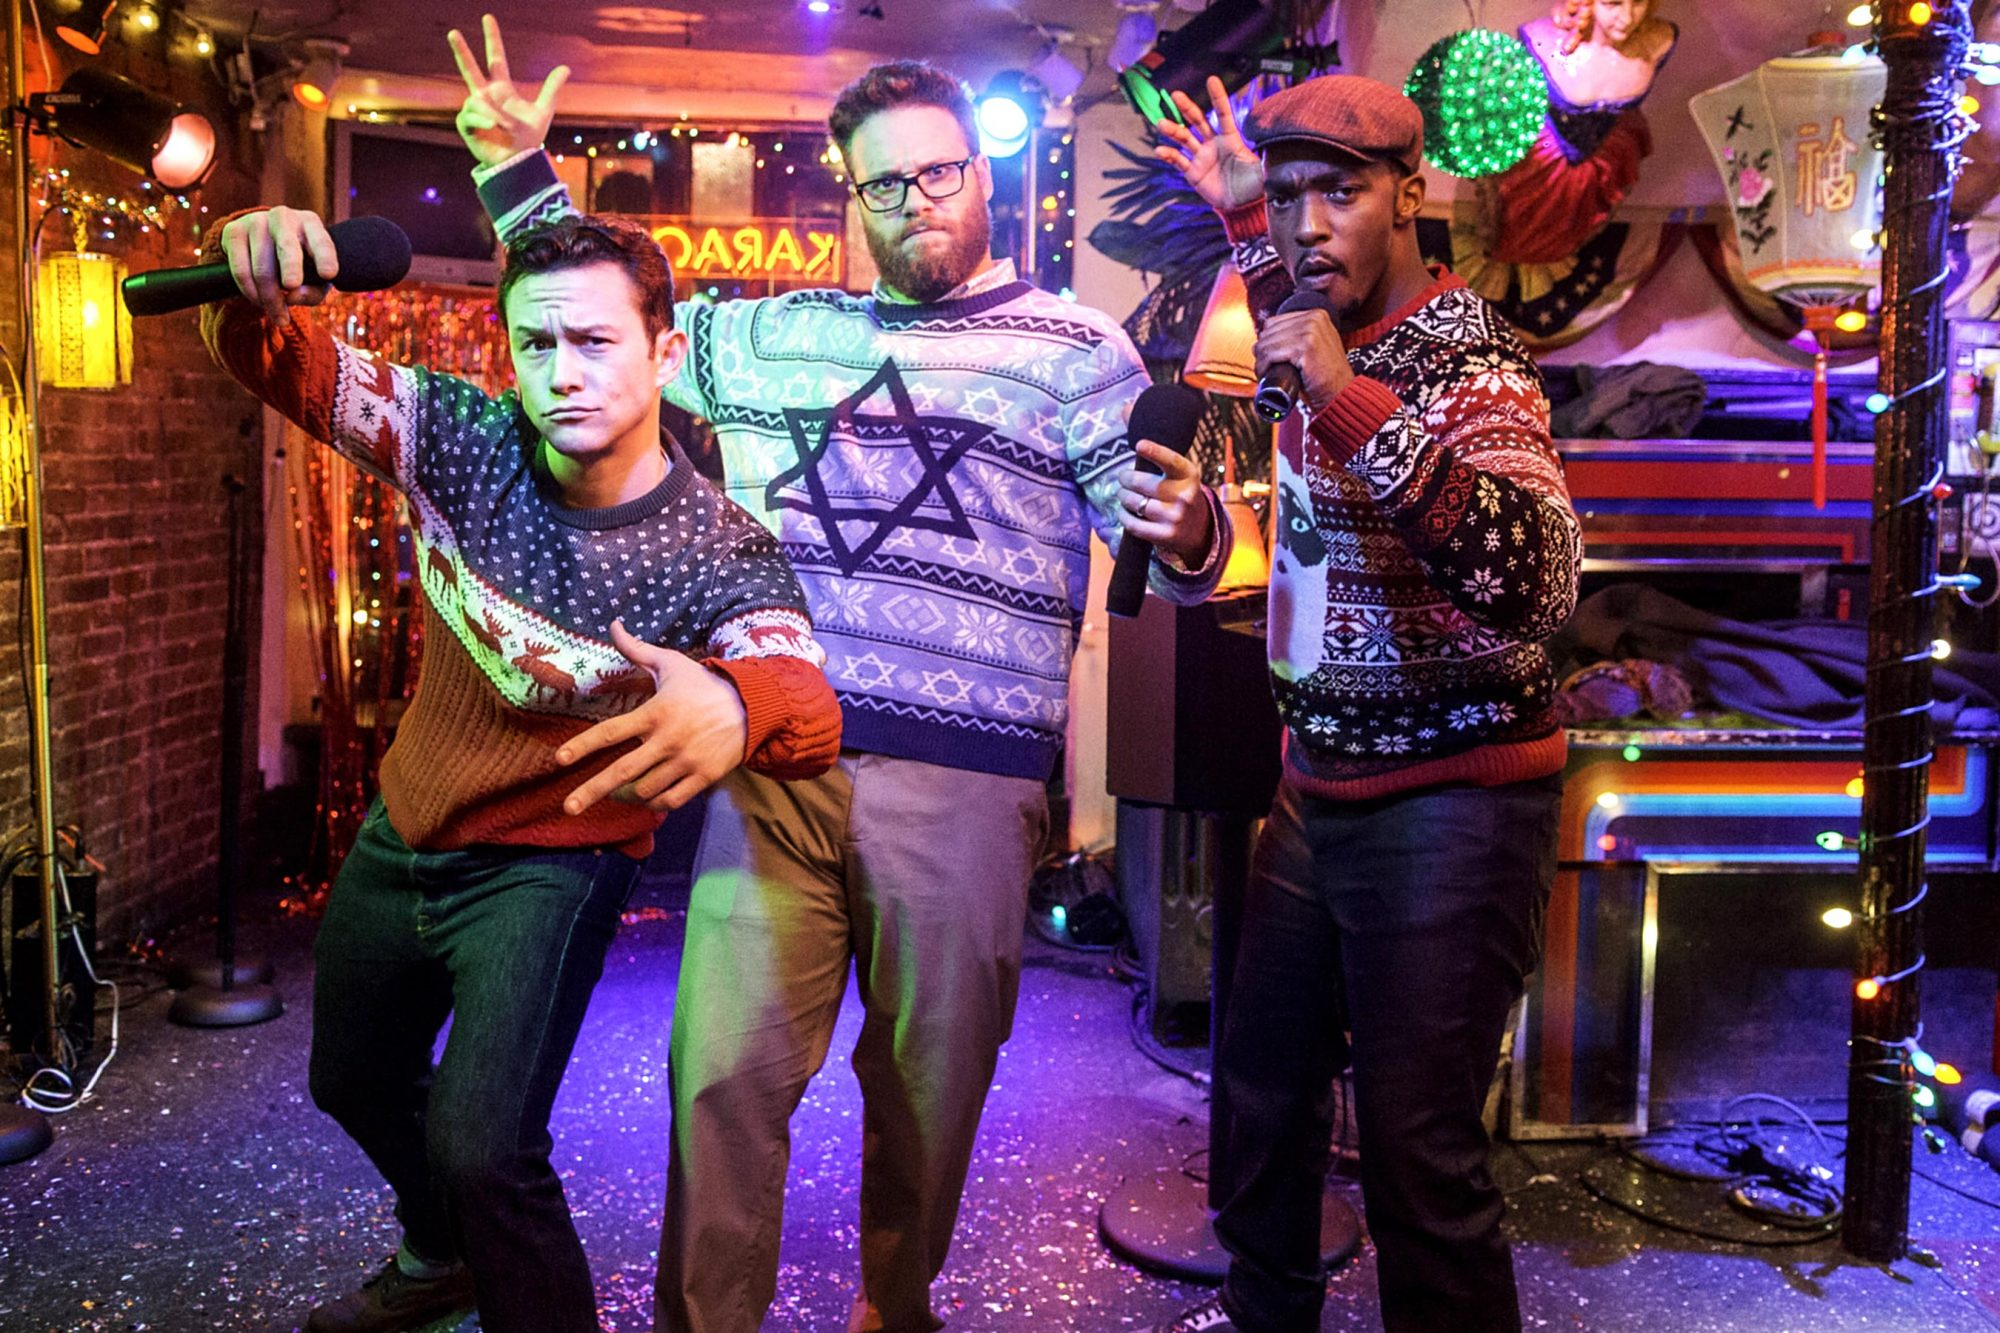 10. Seth Rogen, Joseph Gordon-Levitt, and Anthony Mackie in The Night Before (2015)